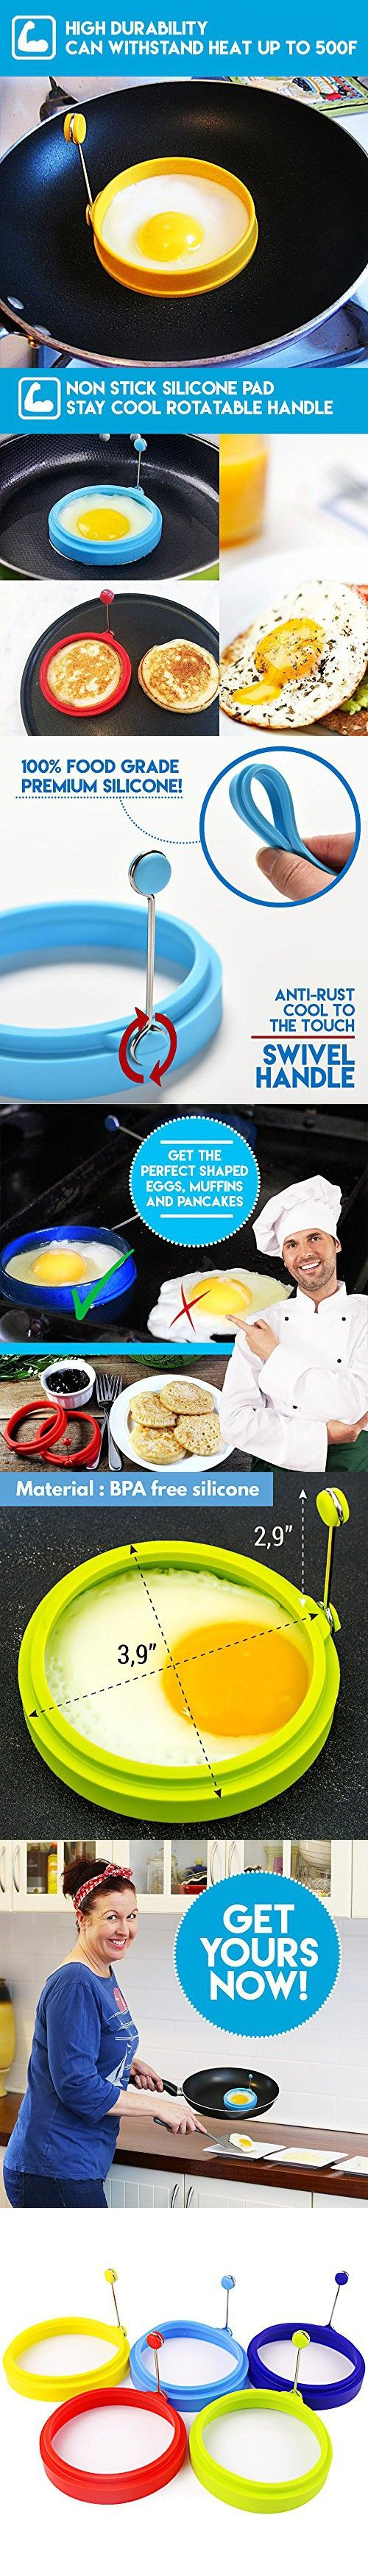 My Egg Ring   Set of 5   Innovative 3.5 Inch Silicone Egg Ring Pancake Maker Non Stick Round Cooking Mold with Handle   Premium Food Grade Heat Resistant Silicone   Color May Vary   1360